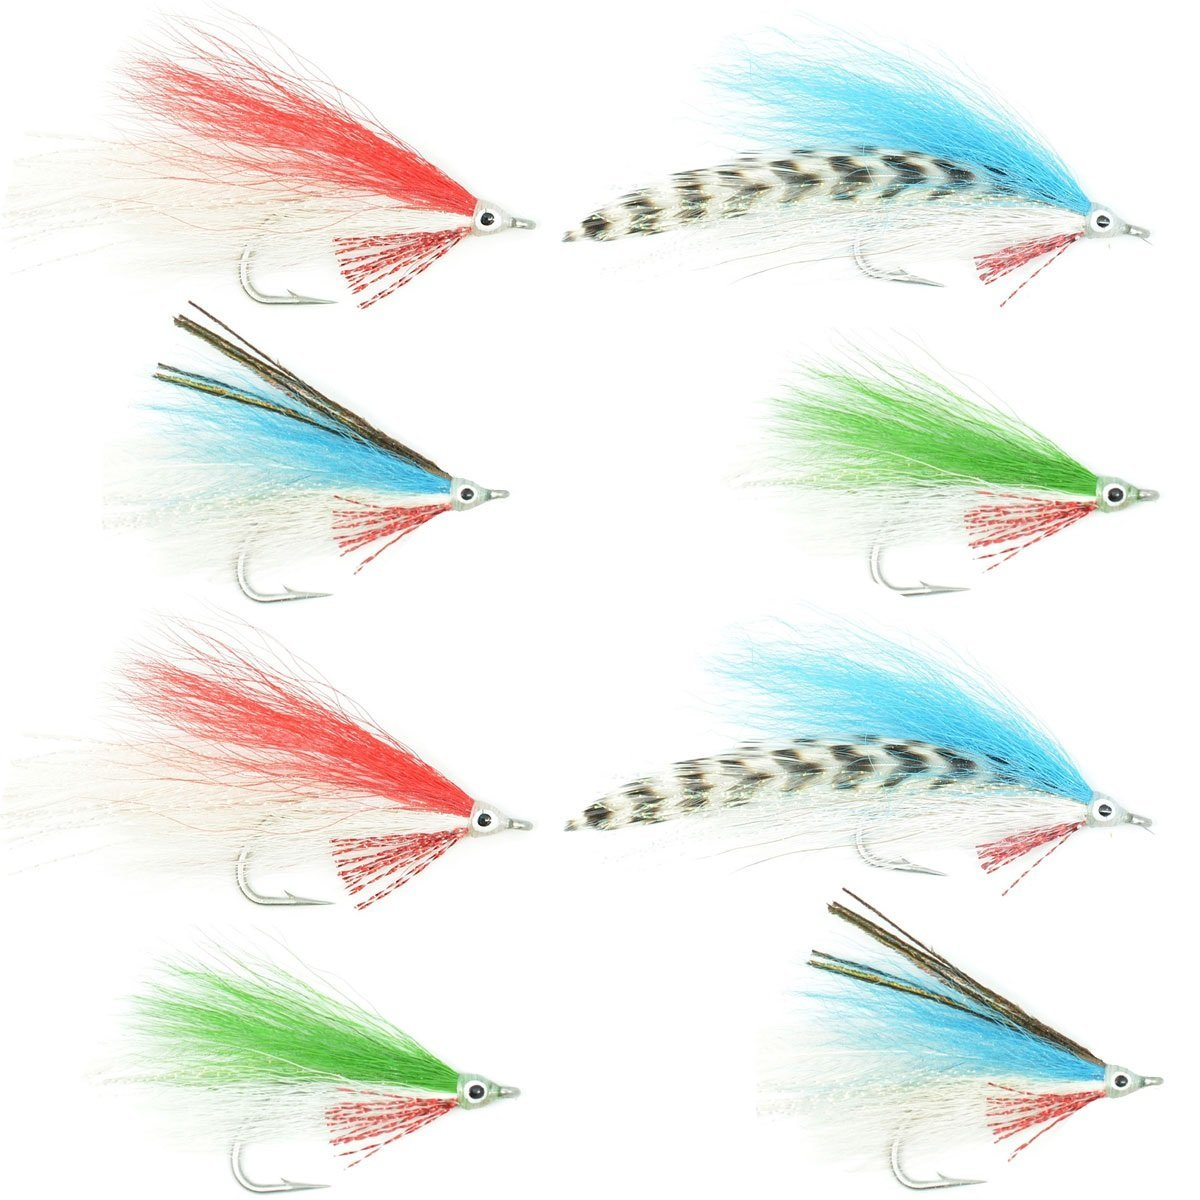 Lefty's Deceiver Fly Fishing Flies Collection - Assortment of 8 Saltwater and Bass Flies - Hook Size 1/0